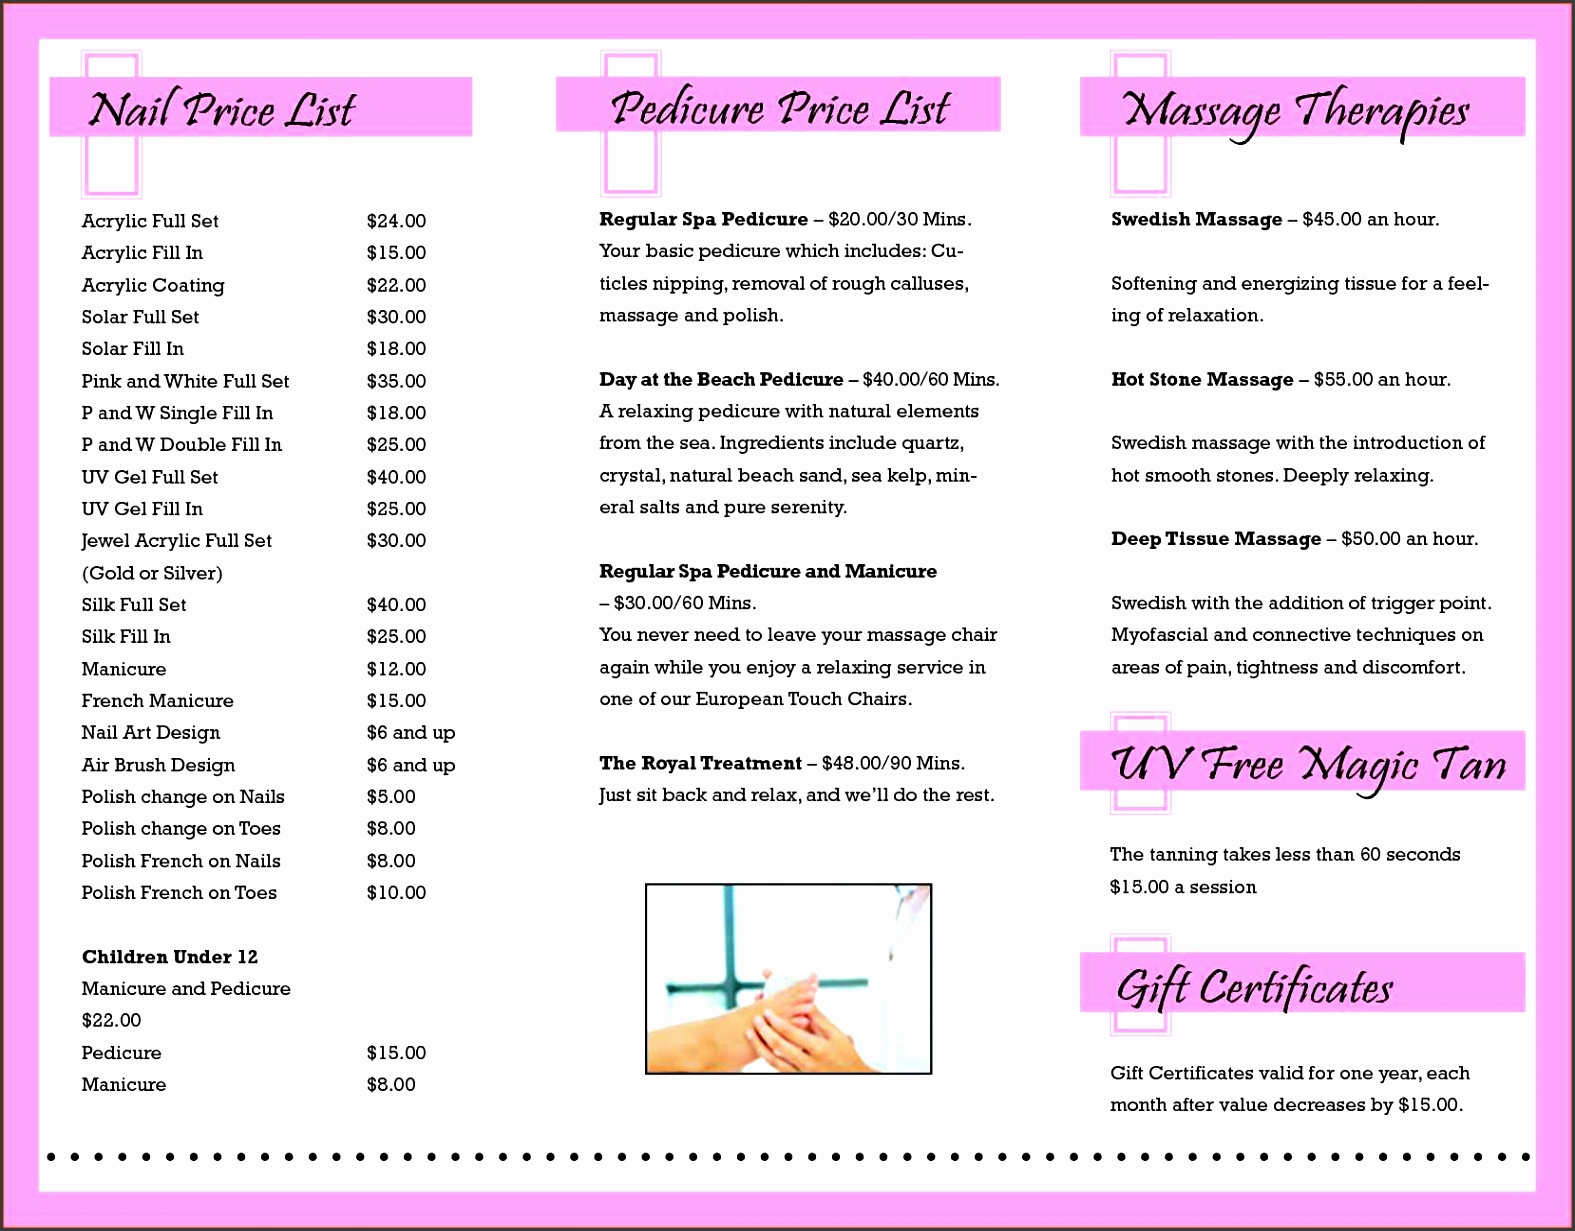 graphy Price List Template Free Download And Price List Template Google Docs